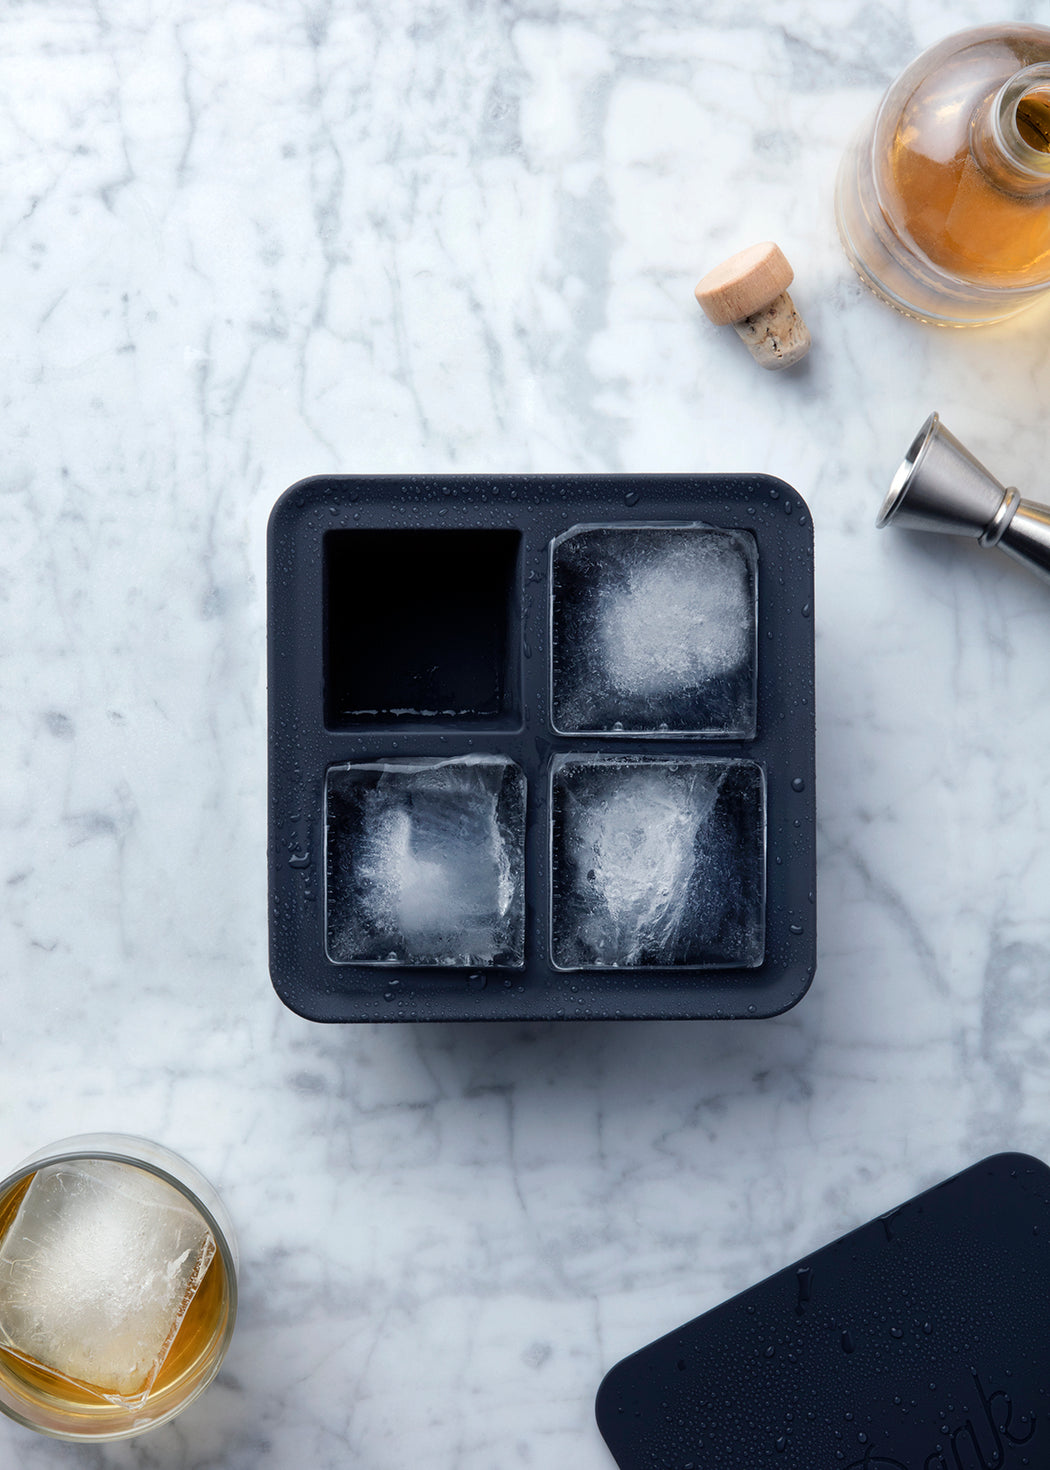 Extra Large Ice Cube Tray for whiskey, bourbon, or cocktails.